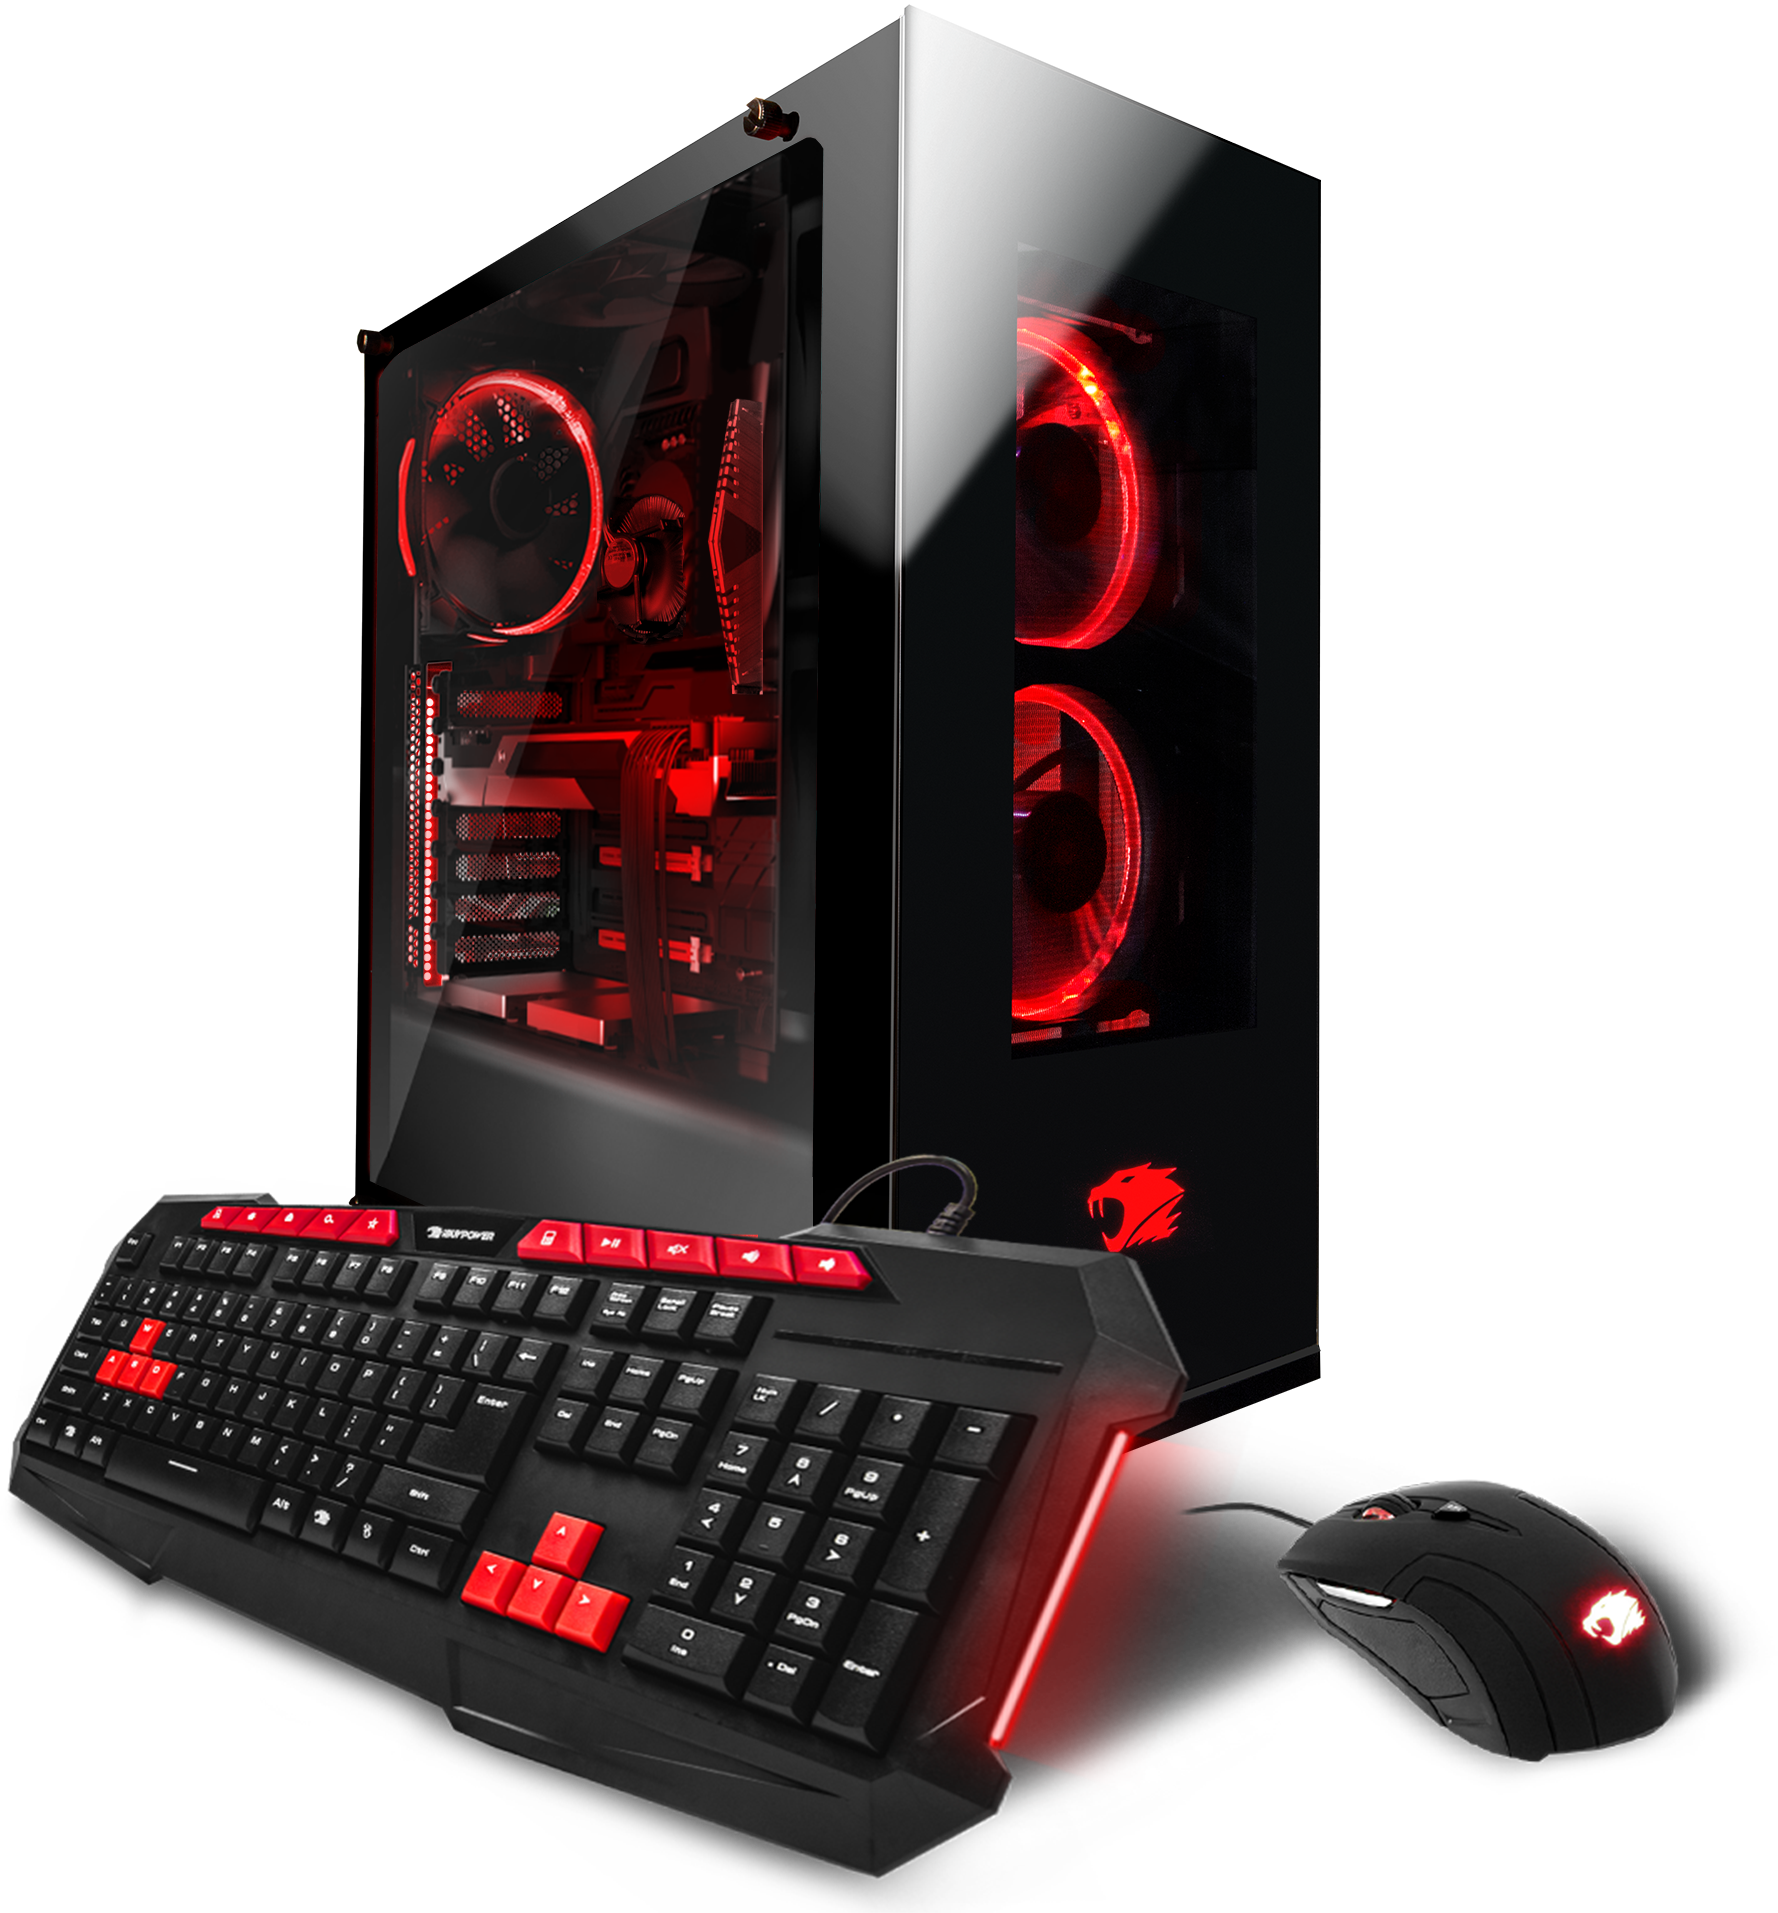 iBUYPOWER Element003i gaming Desktop PC with Intel 8th Gen i7-8700k, GTX 1080 8GB Graphics, 2TB Hard Drive, 480GB SSD, and 16GB Memory, and Windows 10 Home. (Monitor Not Included)